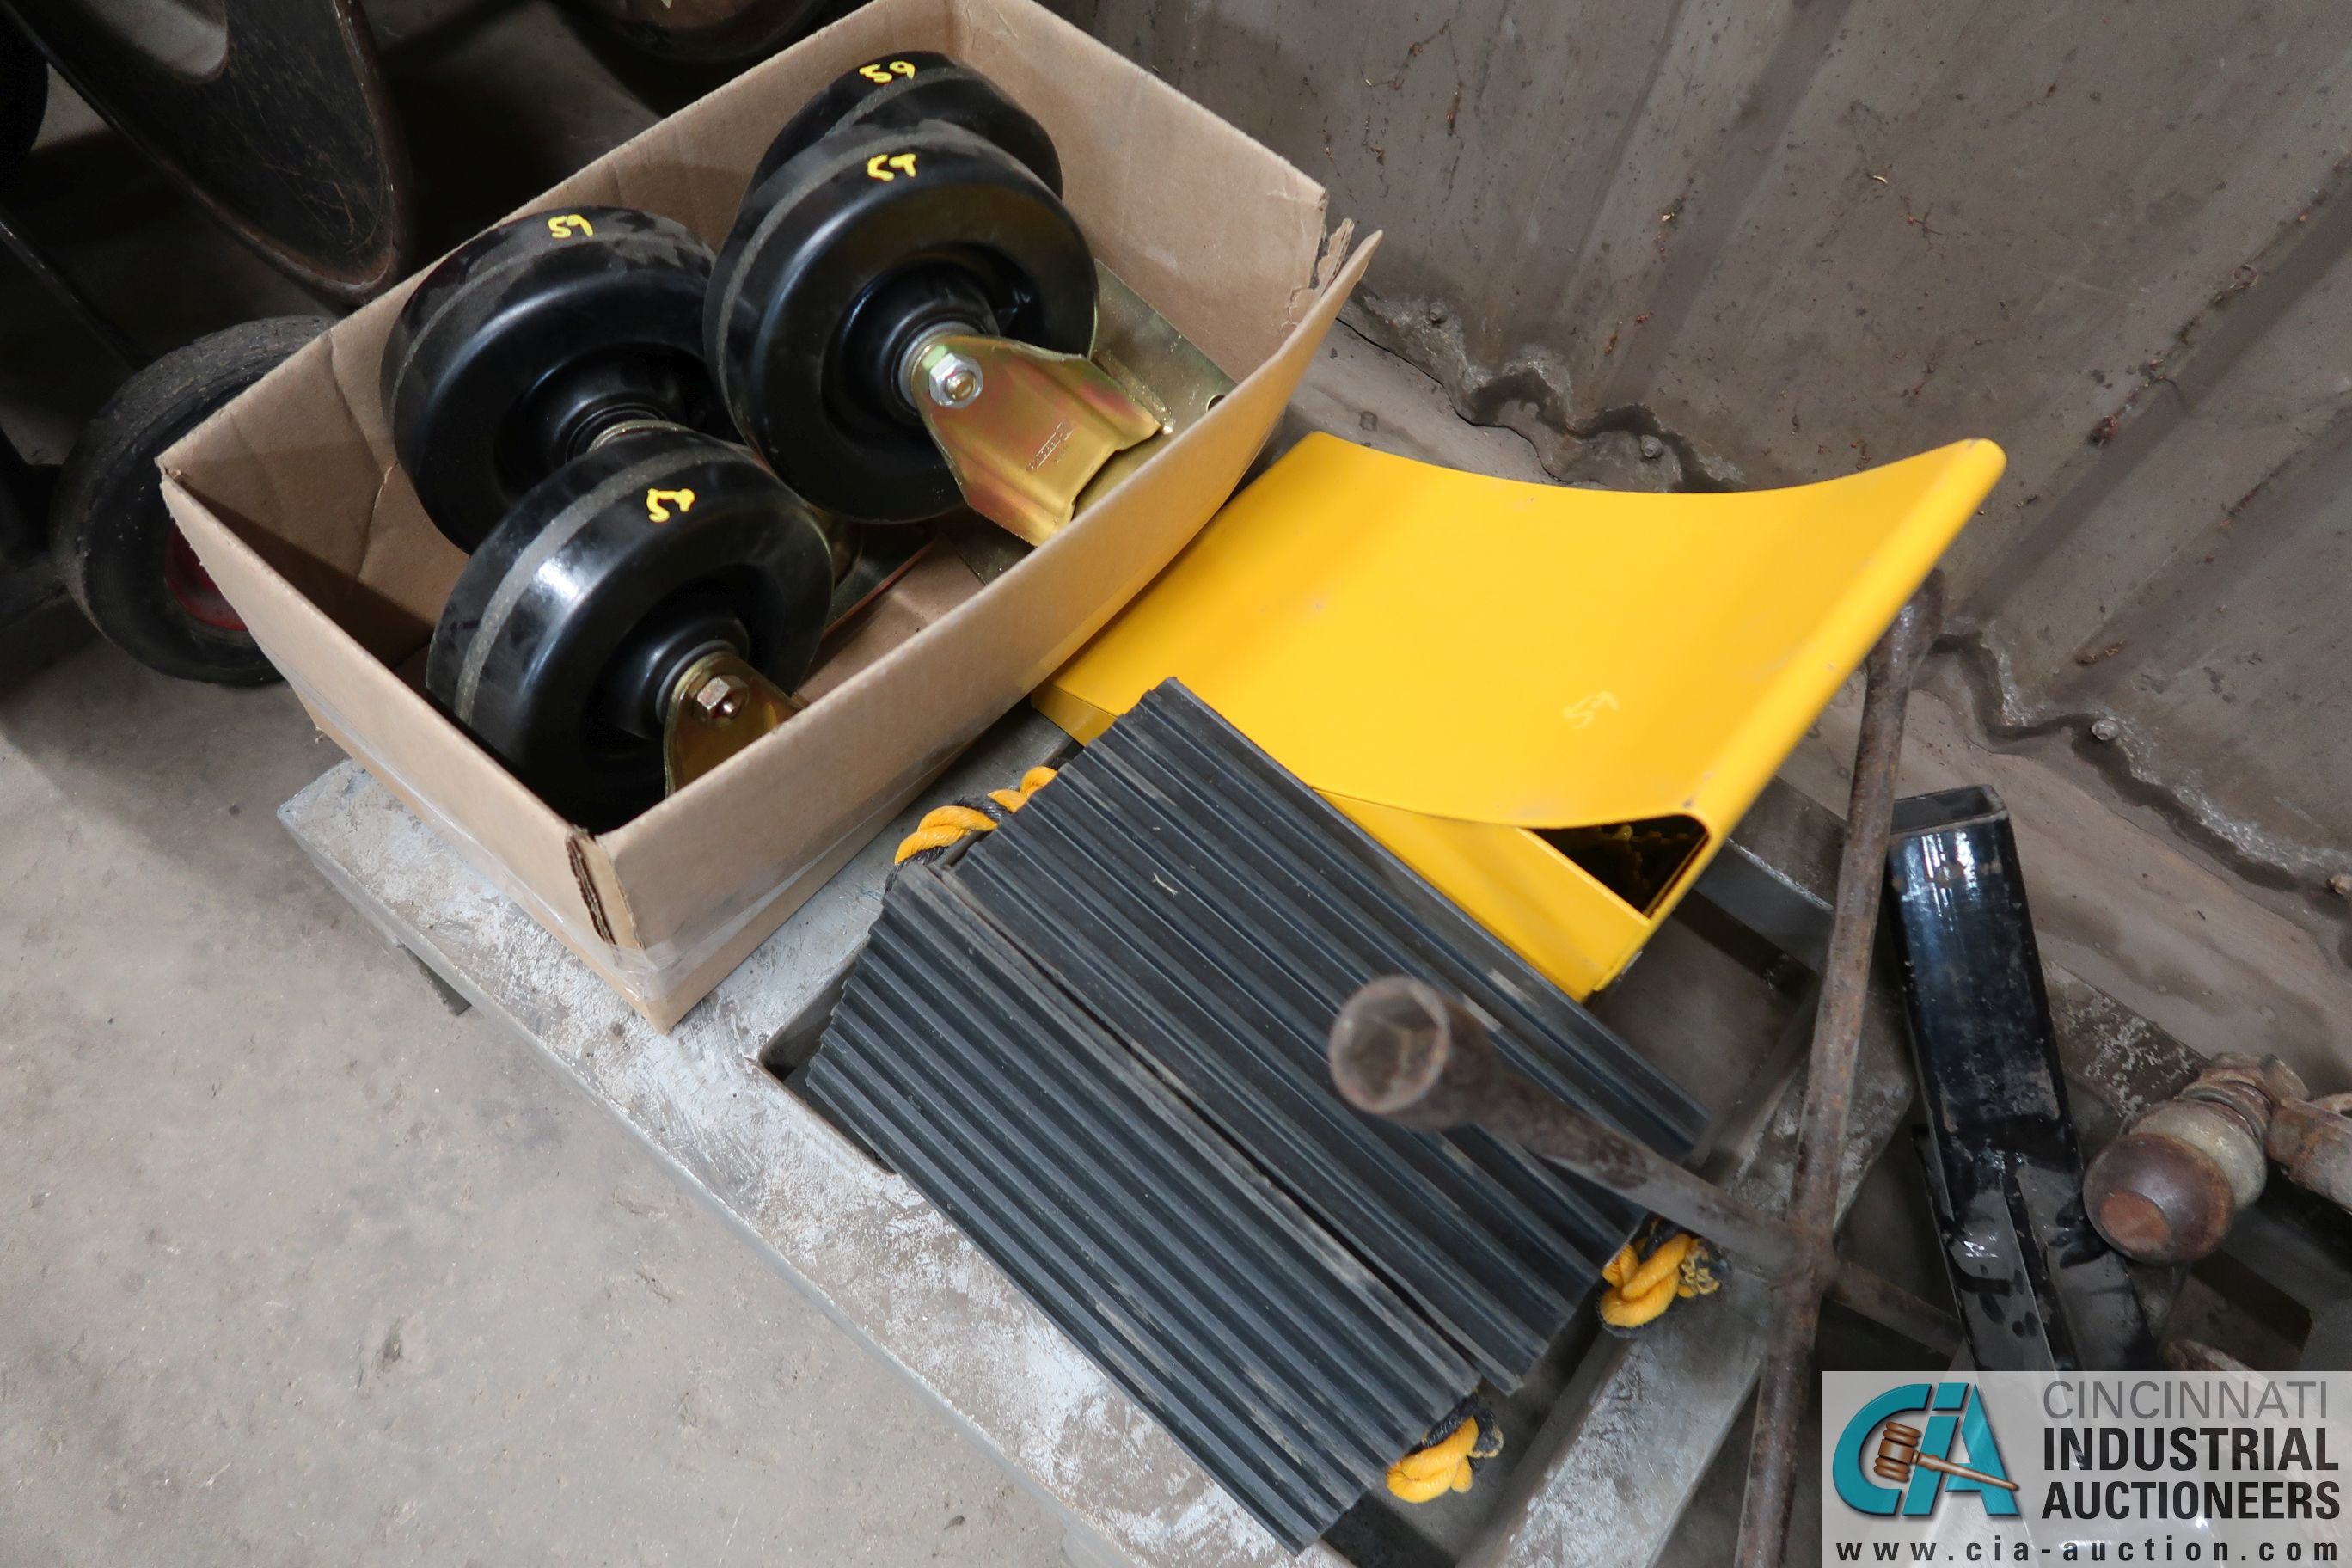 (LOT) MISC. TIRE CHUCKS, CHAINS, HITCHES, WHEELS - Image 5 of 5